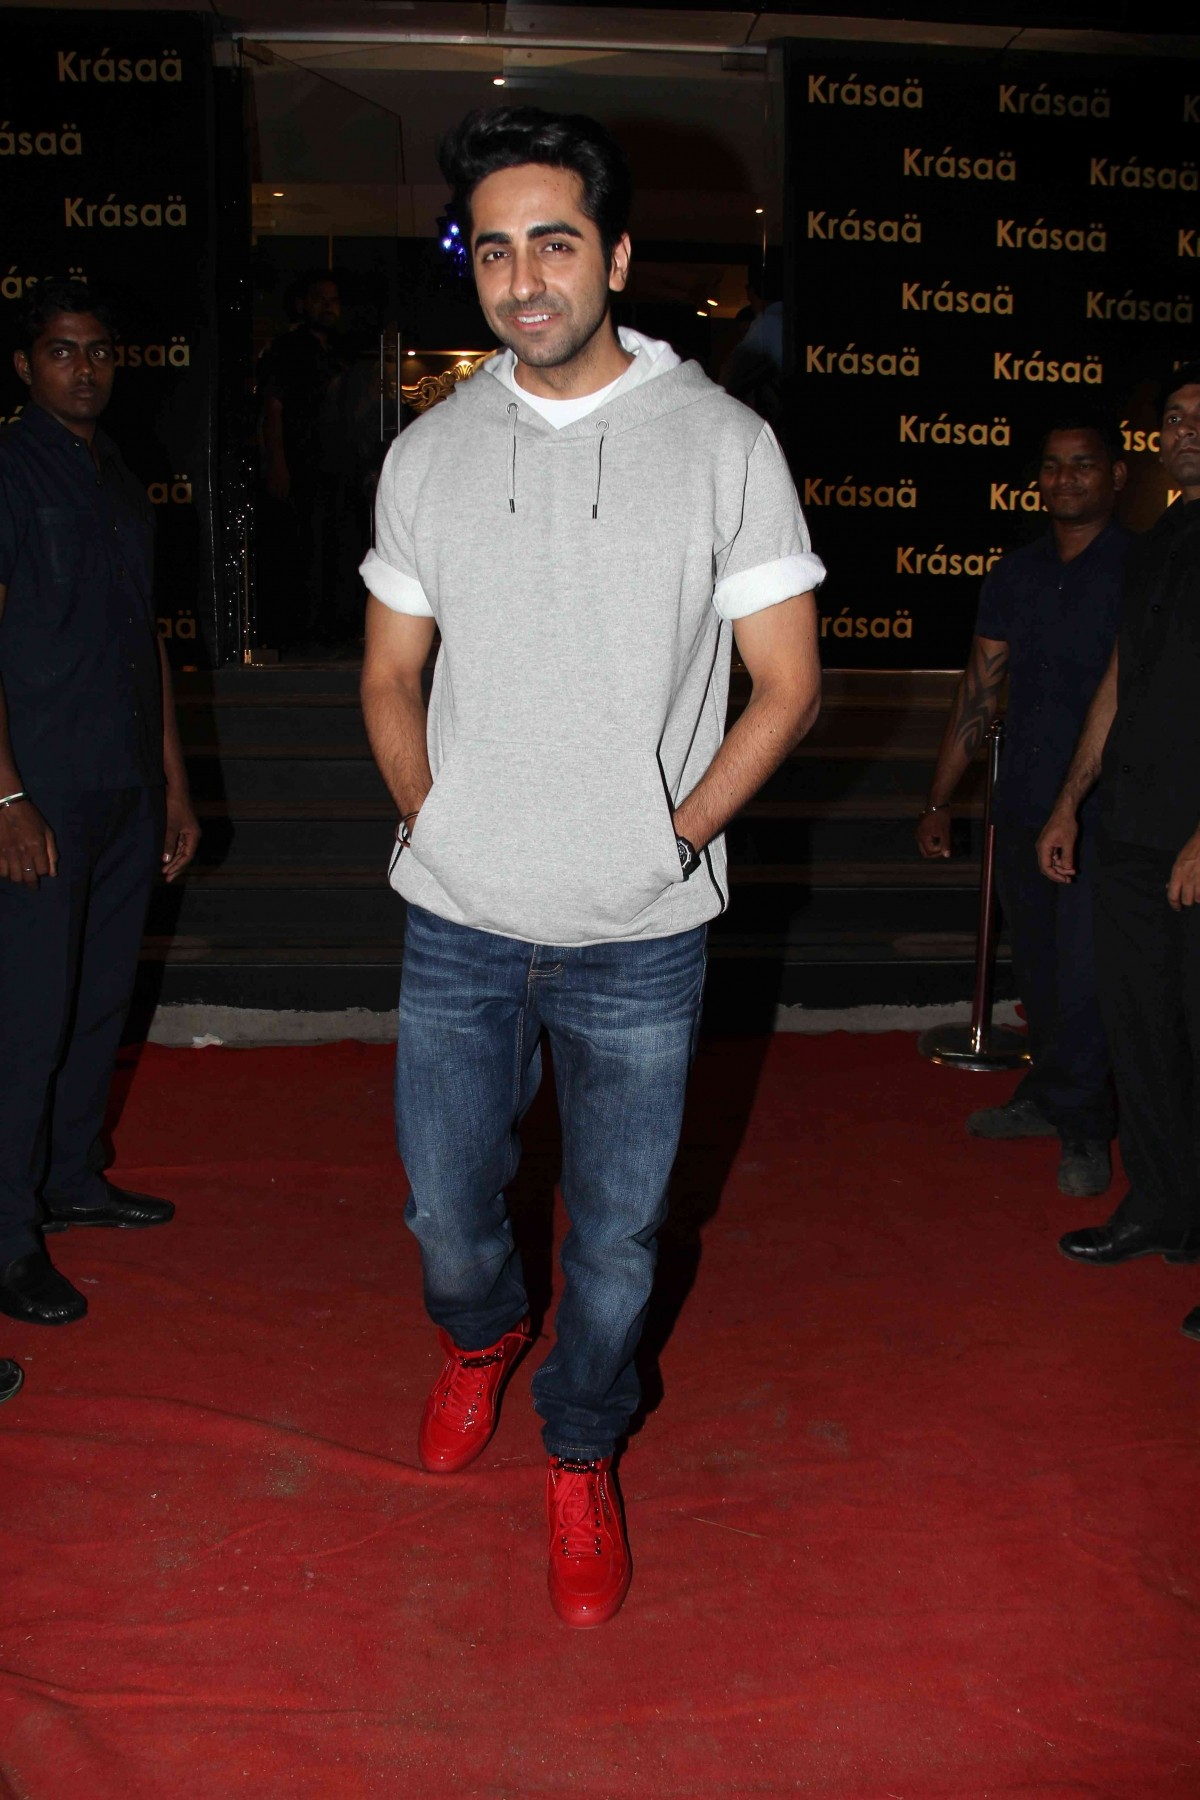 Priyanka Chopra, Sonakshi Sinha, Ayushmann Khurrana and Other Celebs Attend Launch of Vikram Phadnis' Store